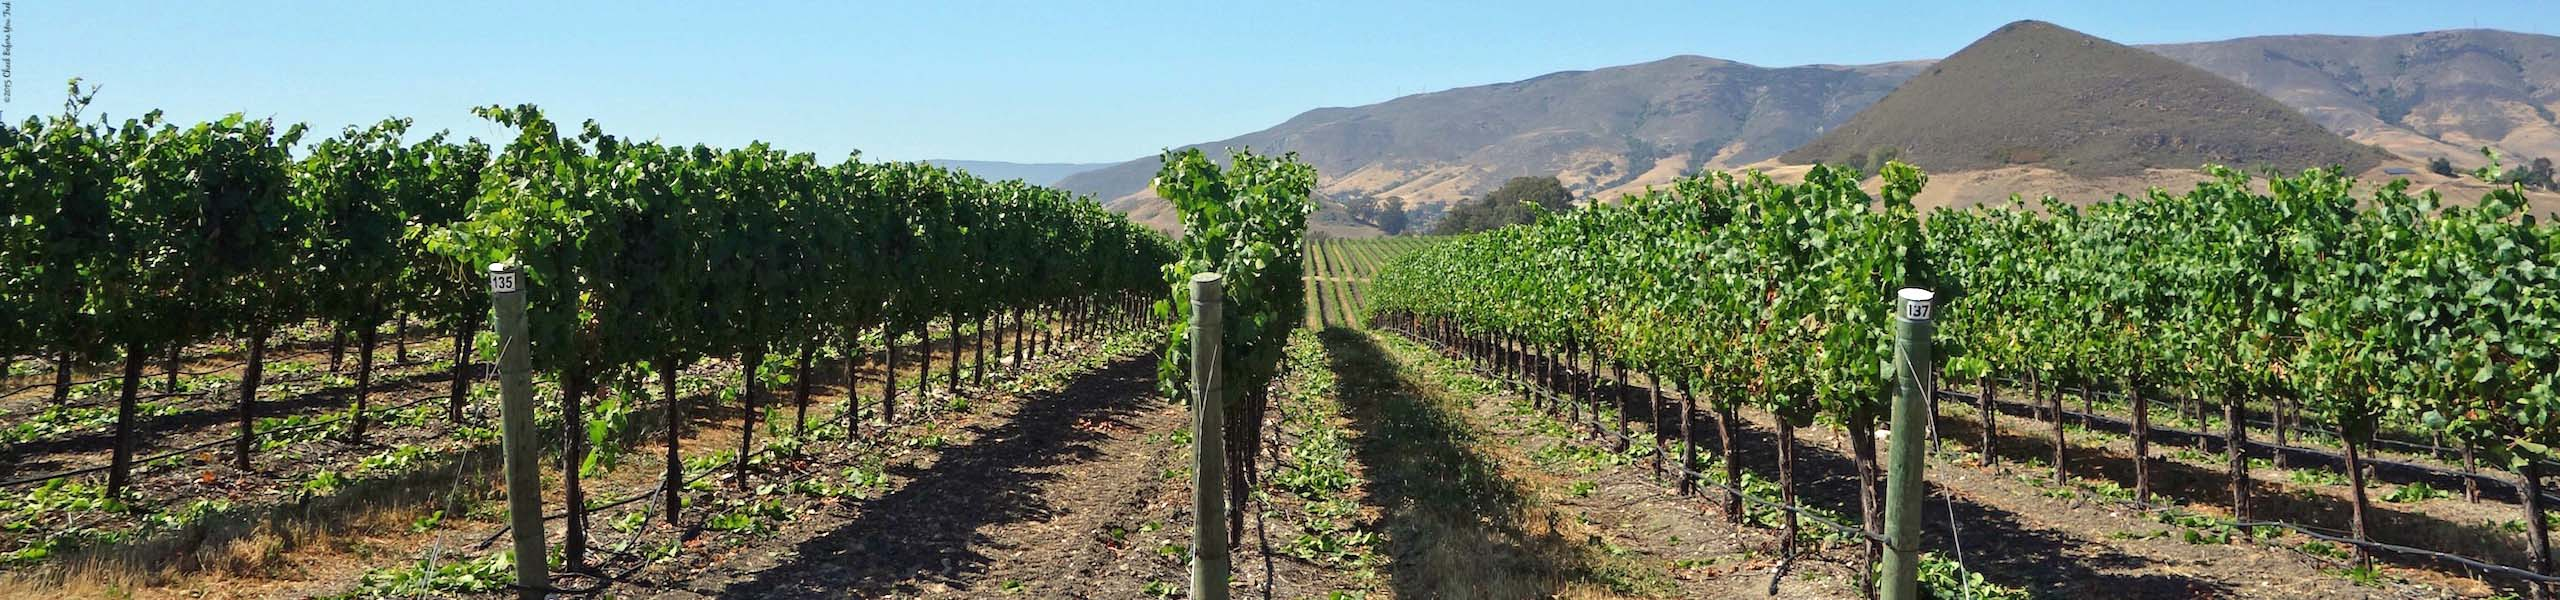 Vineyard Lanes